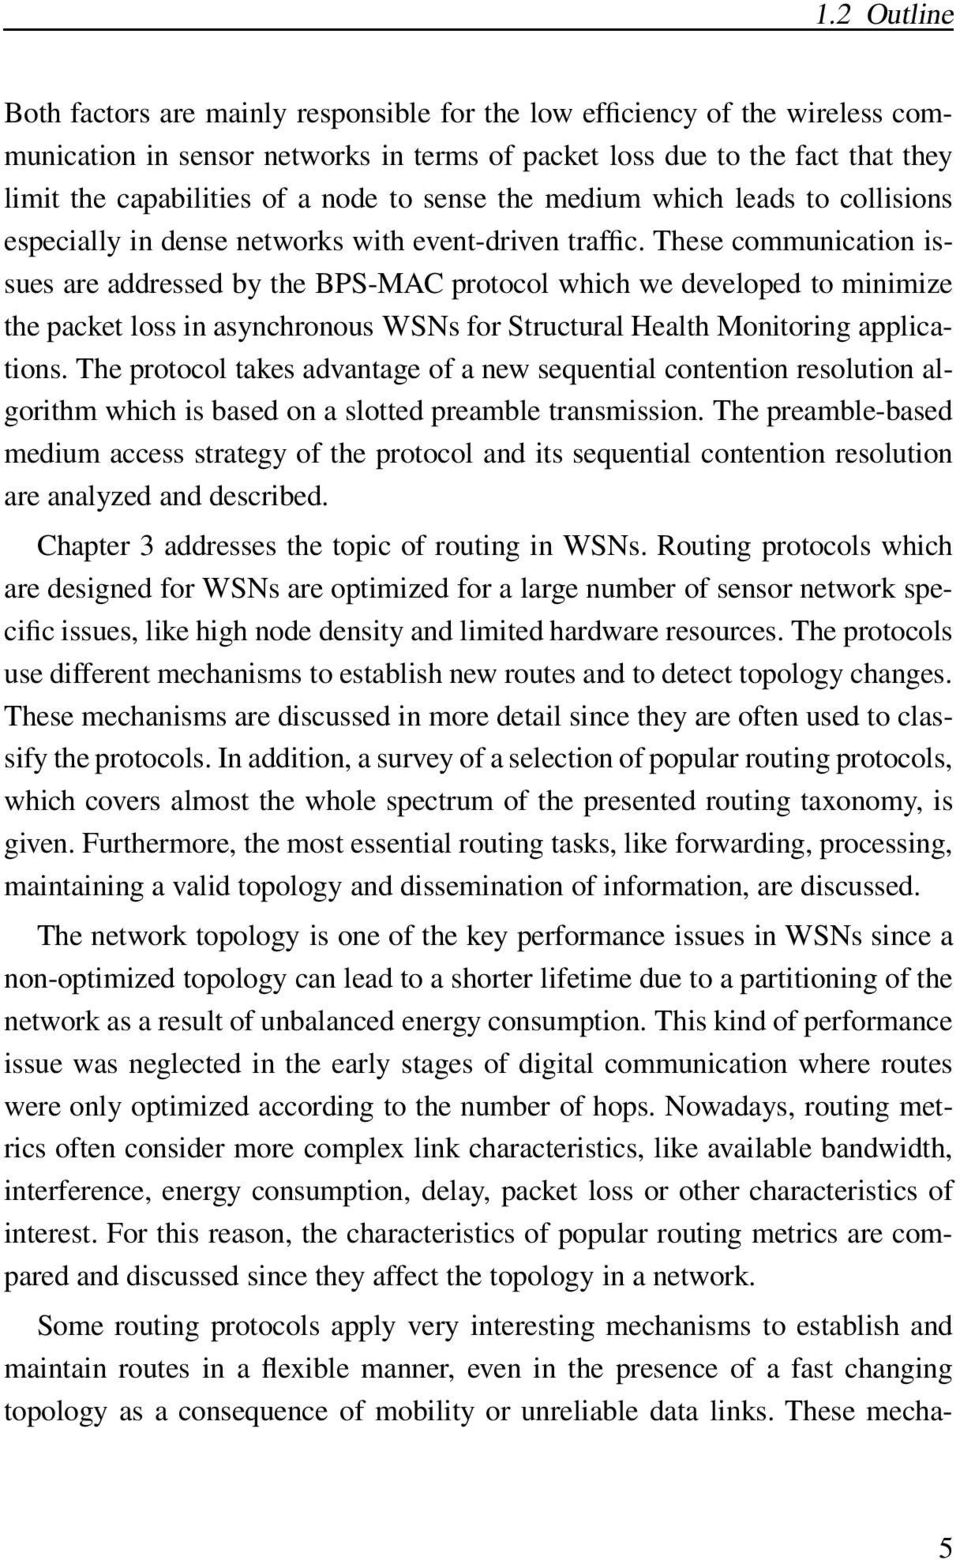 These communication issues are addressed by the BPS-MAC protocol which we developed to minimize the packet loss in asynchronous WSNs for Structural Health Monitoring applications.